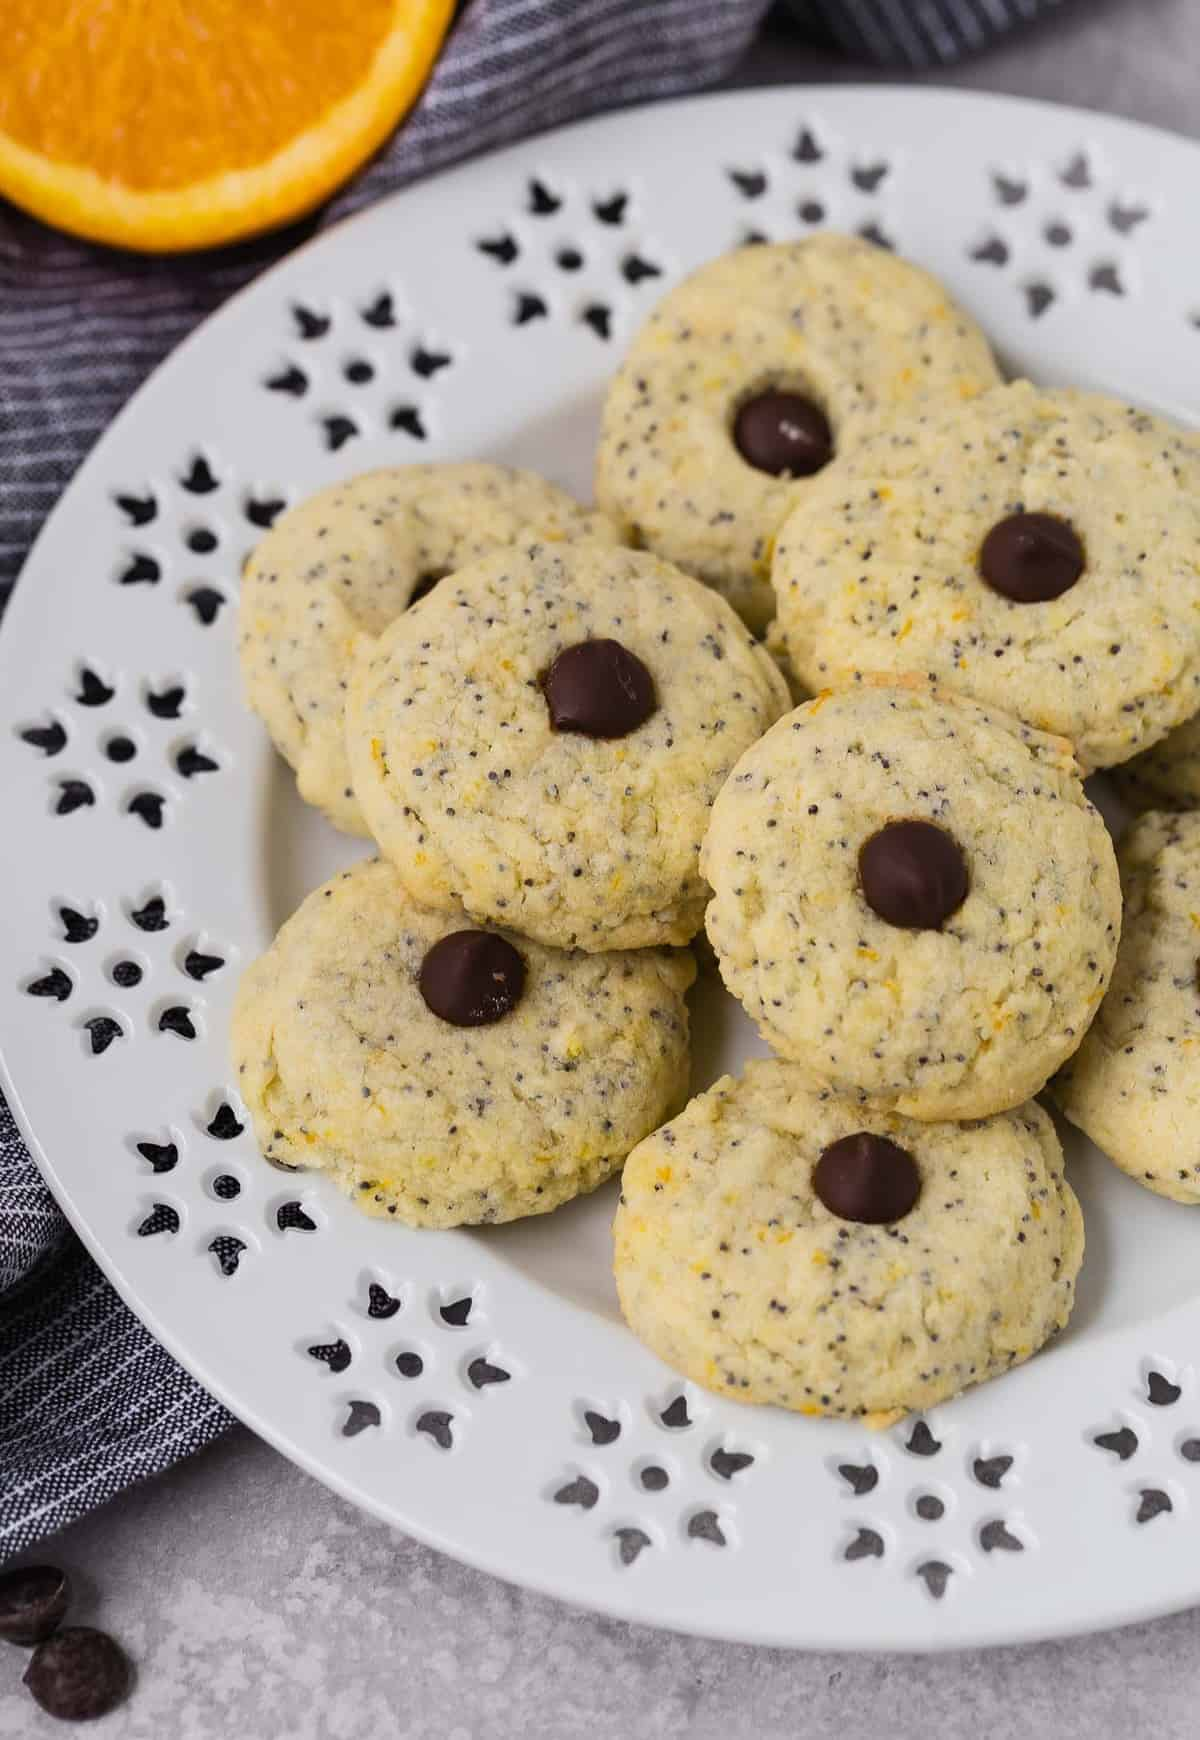 Cookies flecked with poppy seeds and orange zest on a white plate. Each cookie is topped with a chocolate chip.